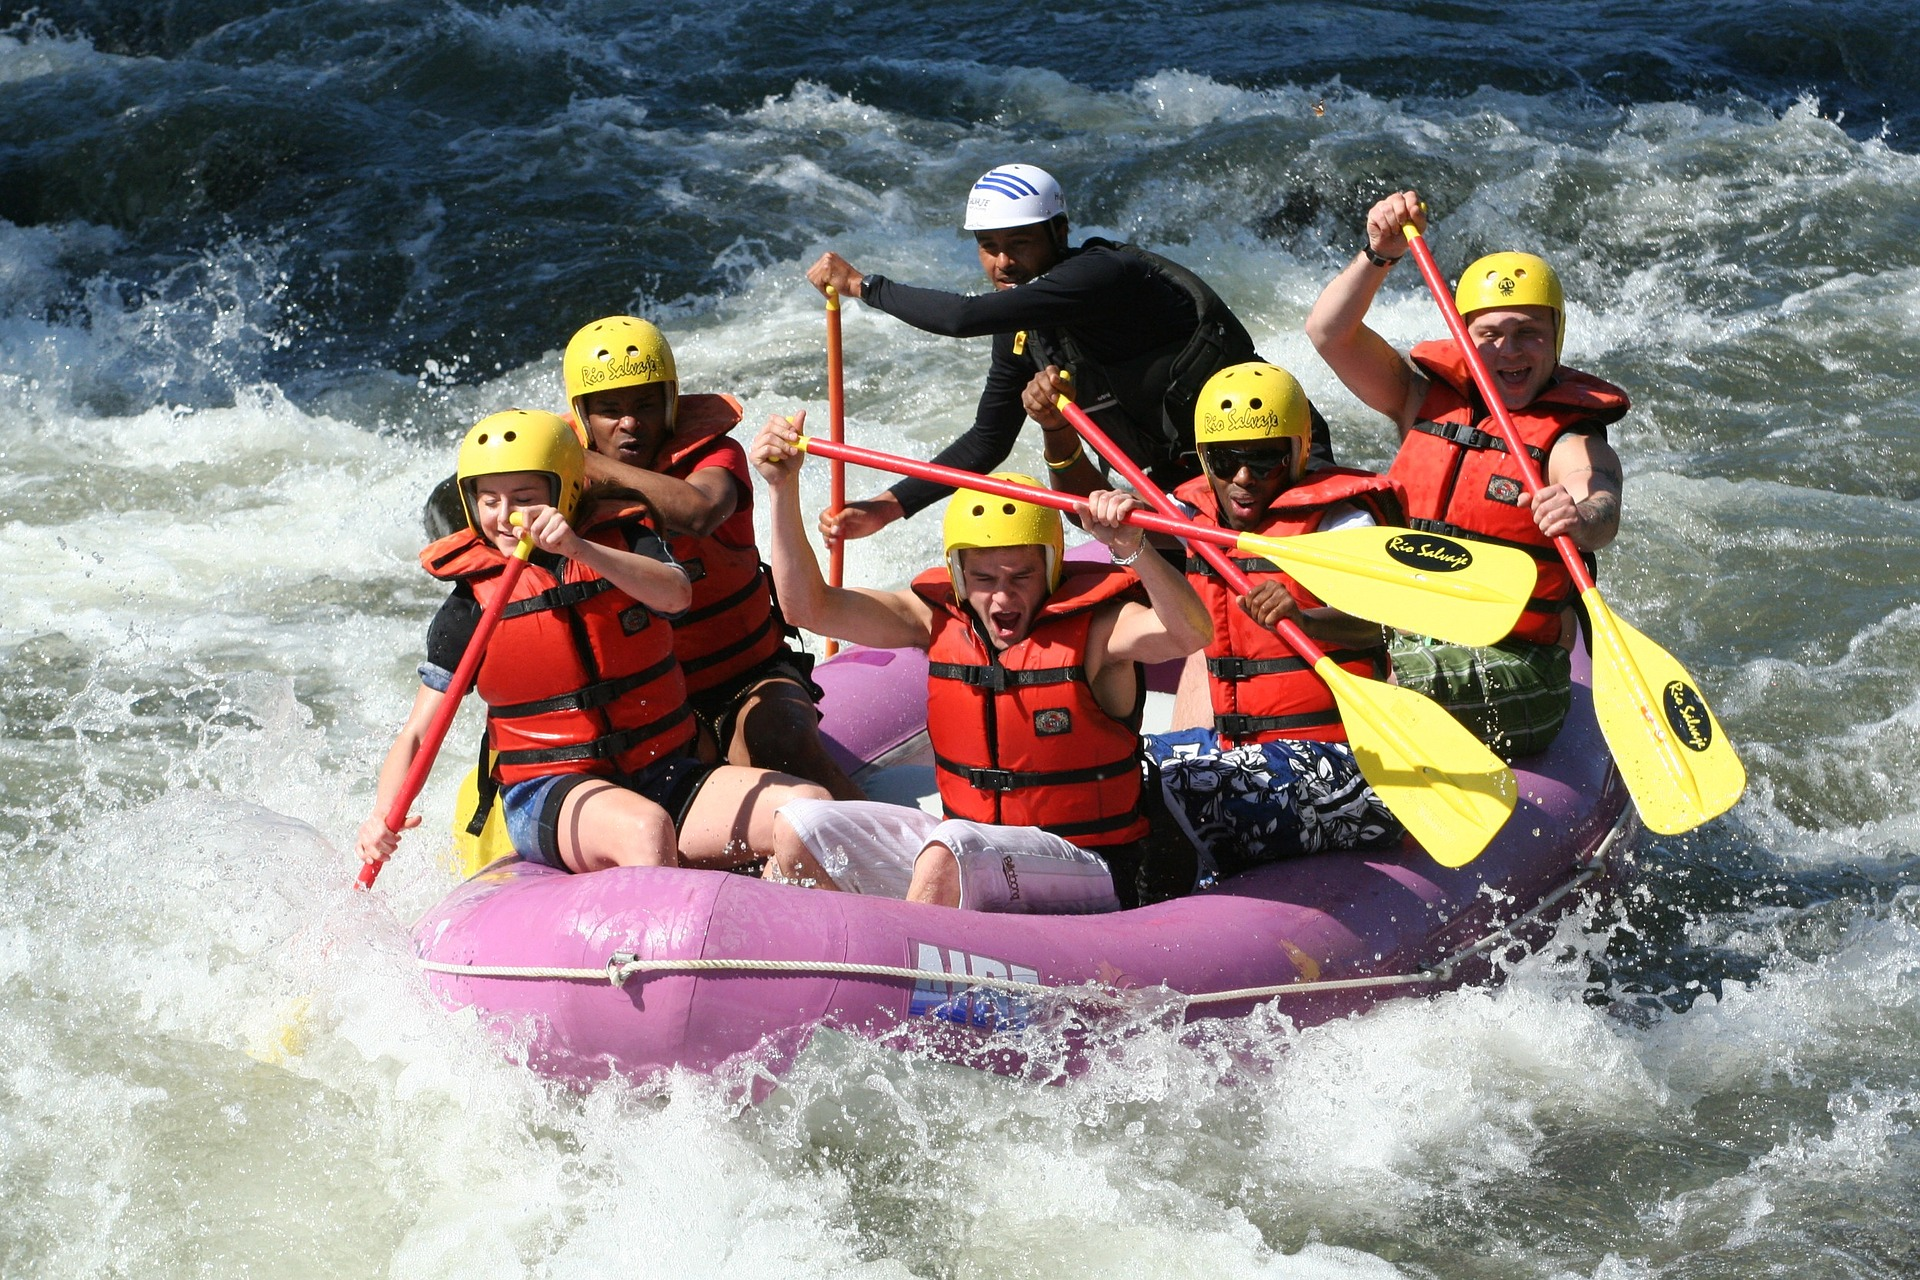 White Water Rafting - Enjoy the rapids and go white water rafting in Snowdonia! Bala Watersports, Get Wet and The National White Water Centre are all under an hour away from Llys Tanwg!